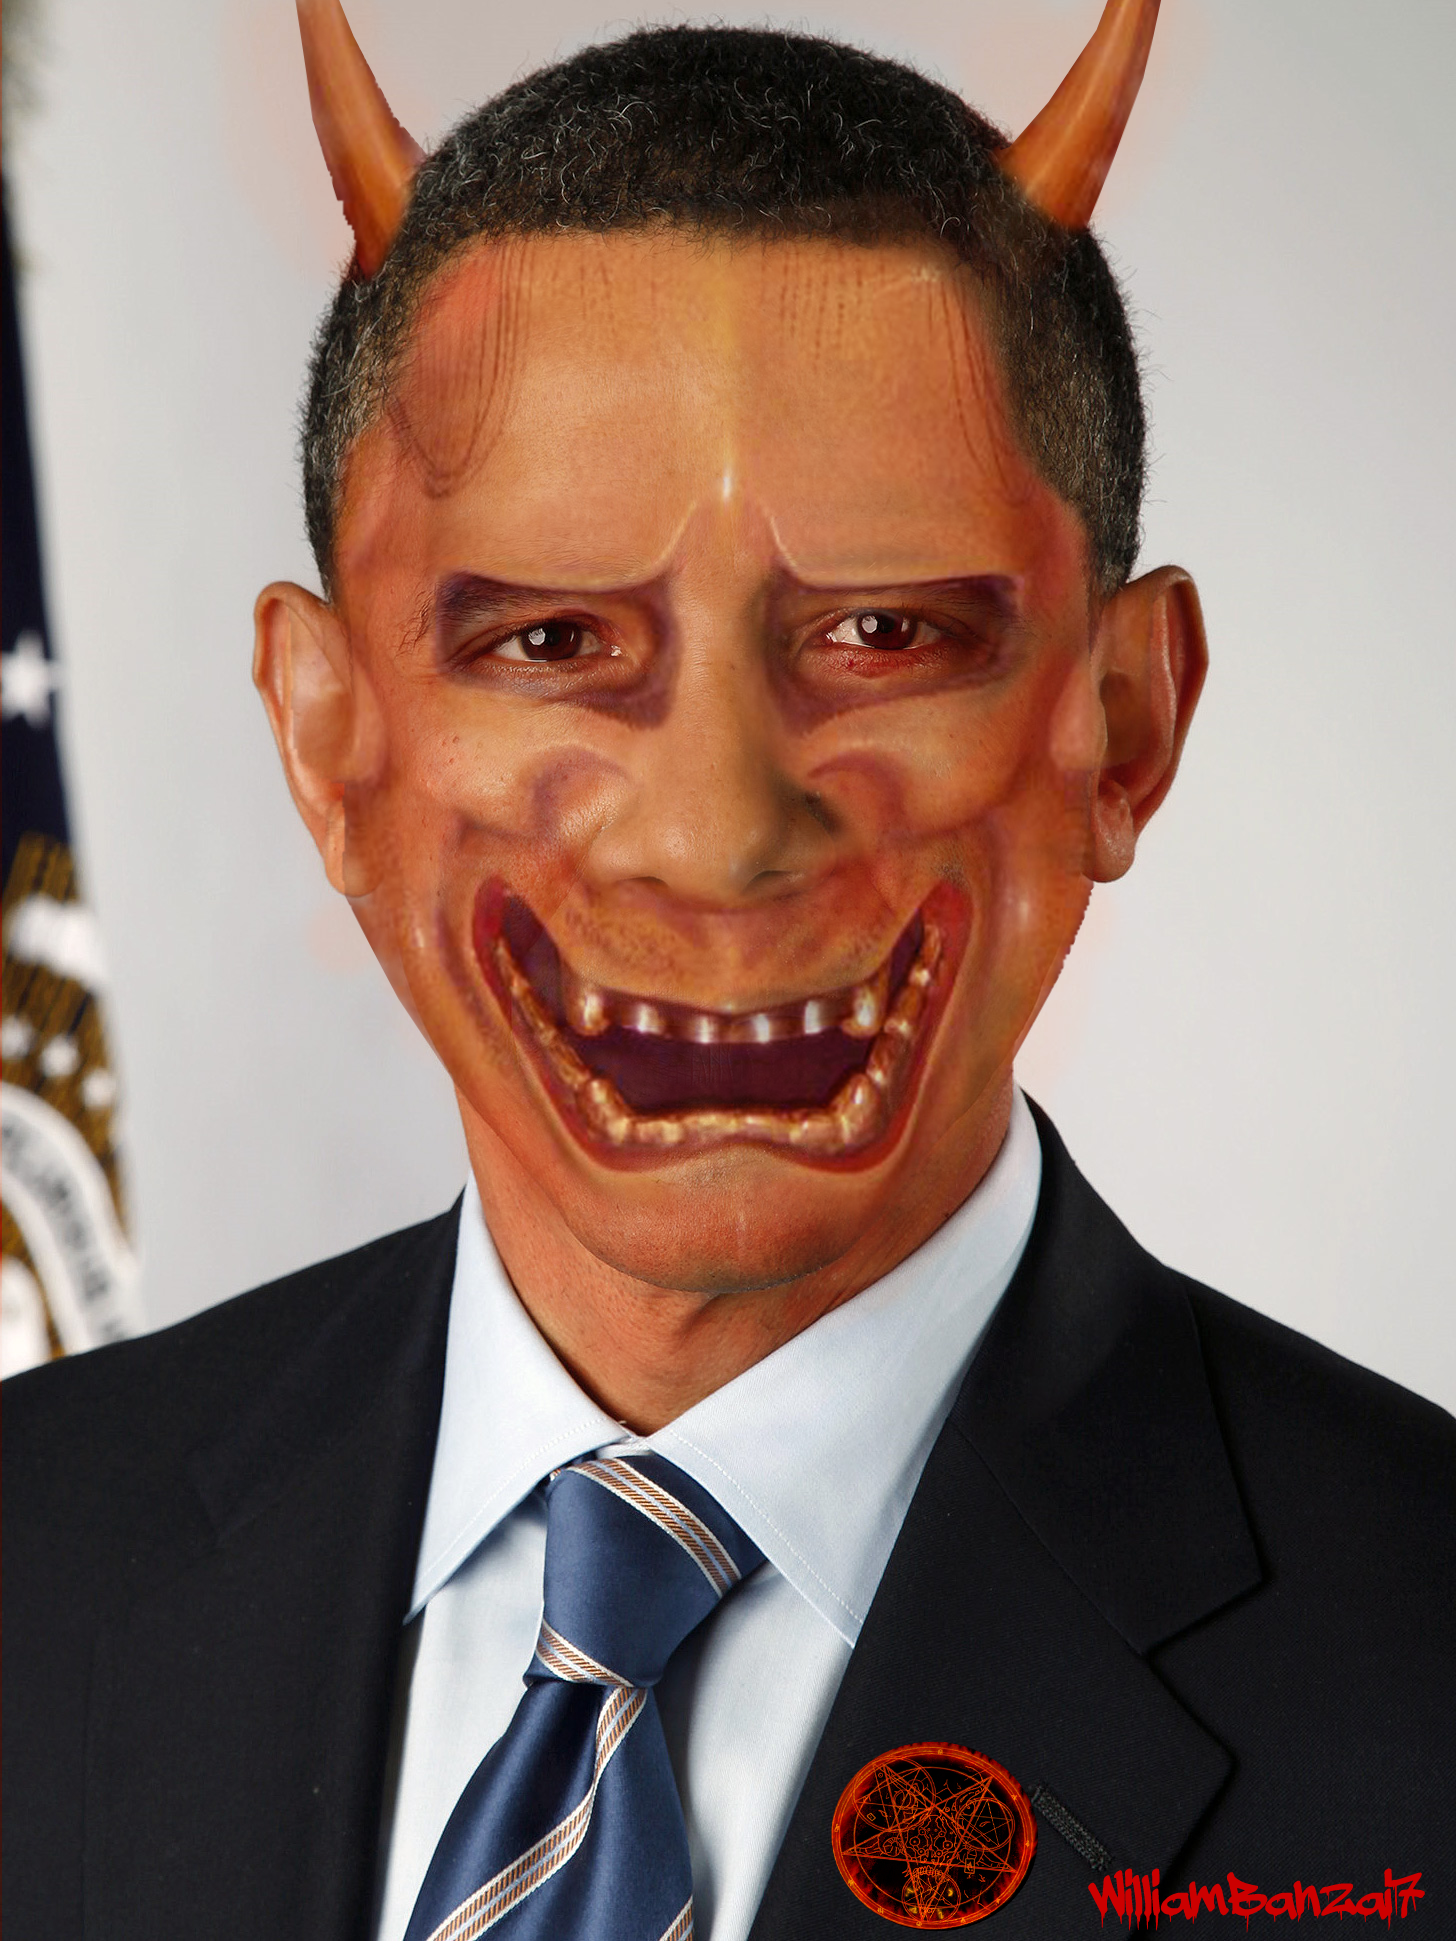 BARRACK LUCIFER (BARRACKZEBUB)